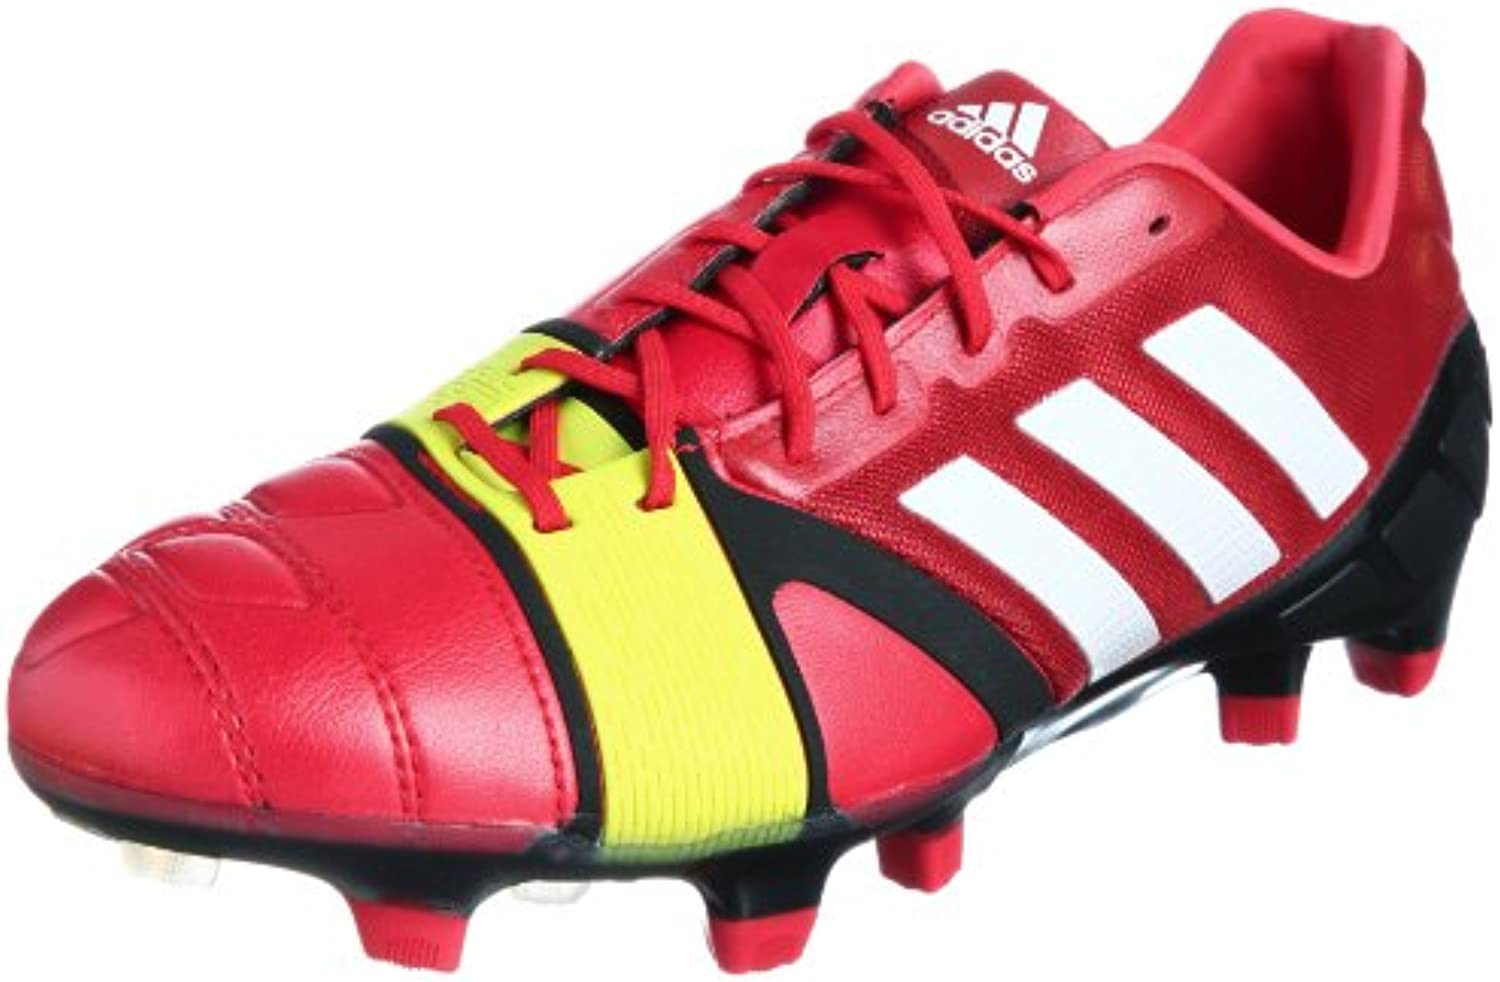 ADIDAS PERFORMANCE Nitrocharge 1.0 TRX FG